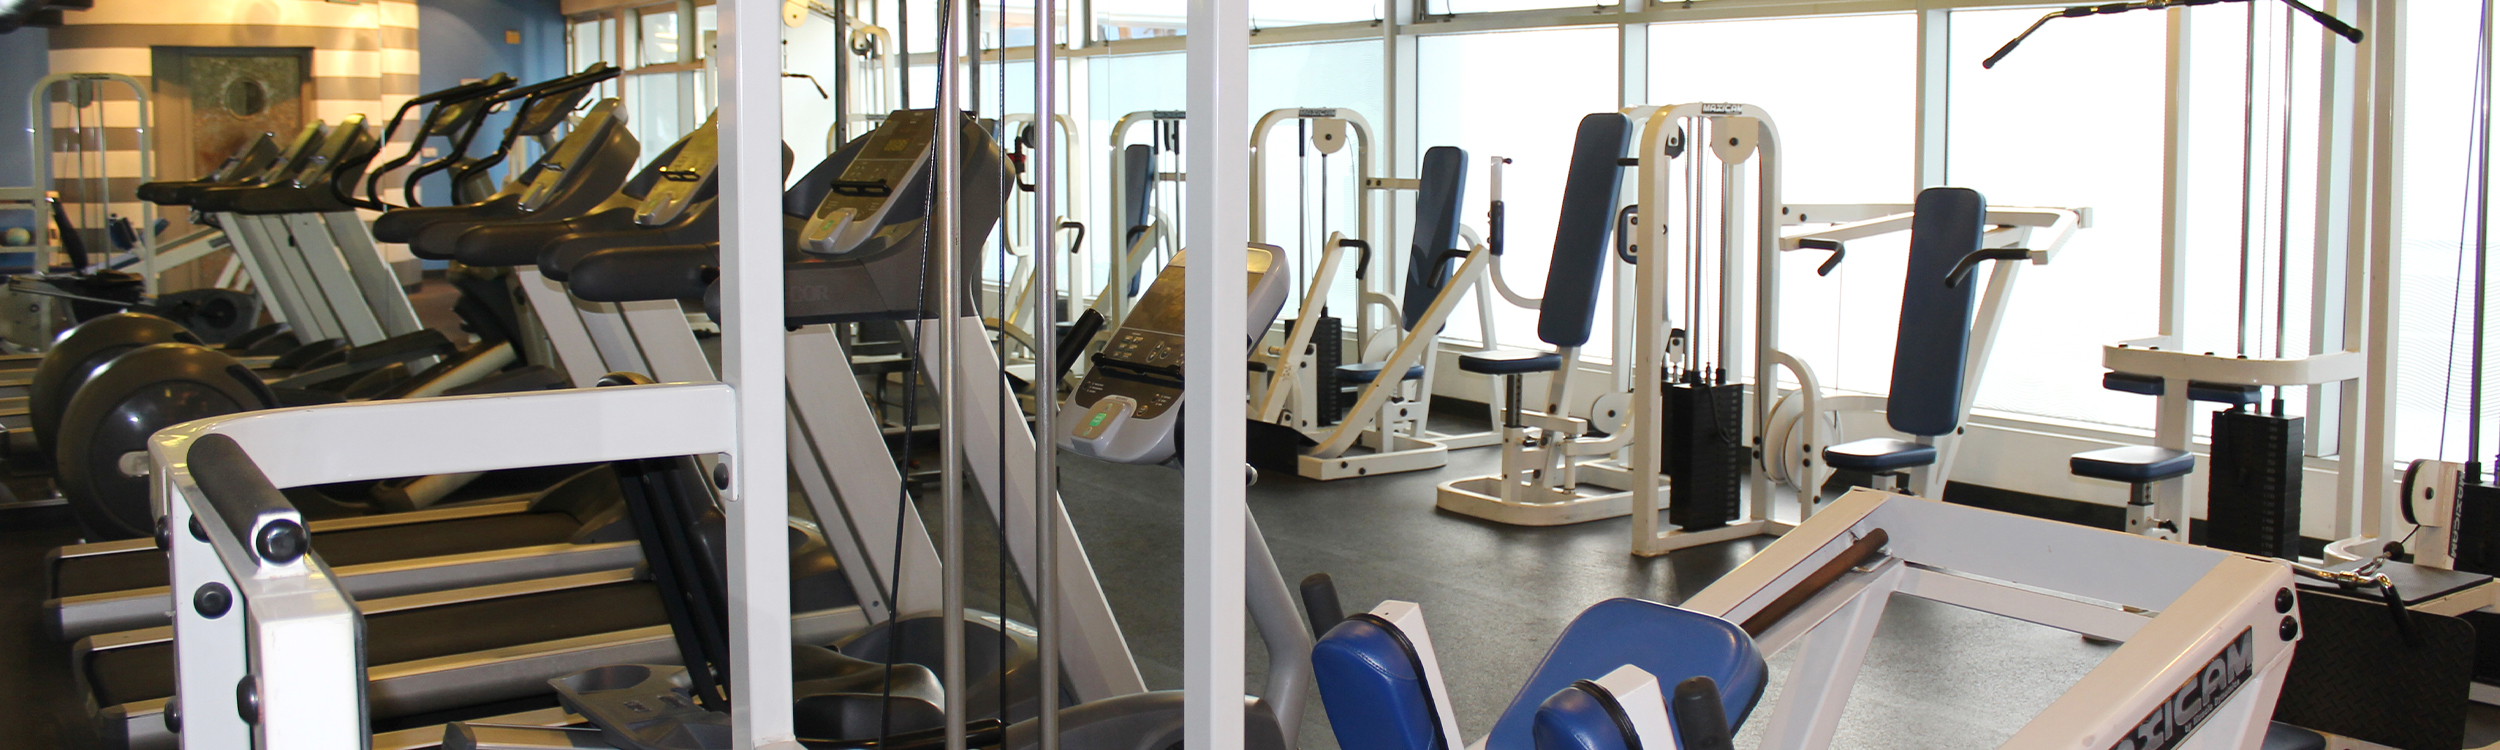 fitness center at Pacific Plaza